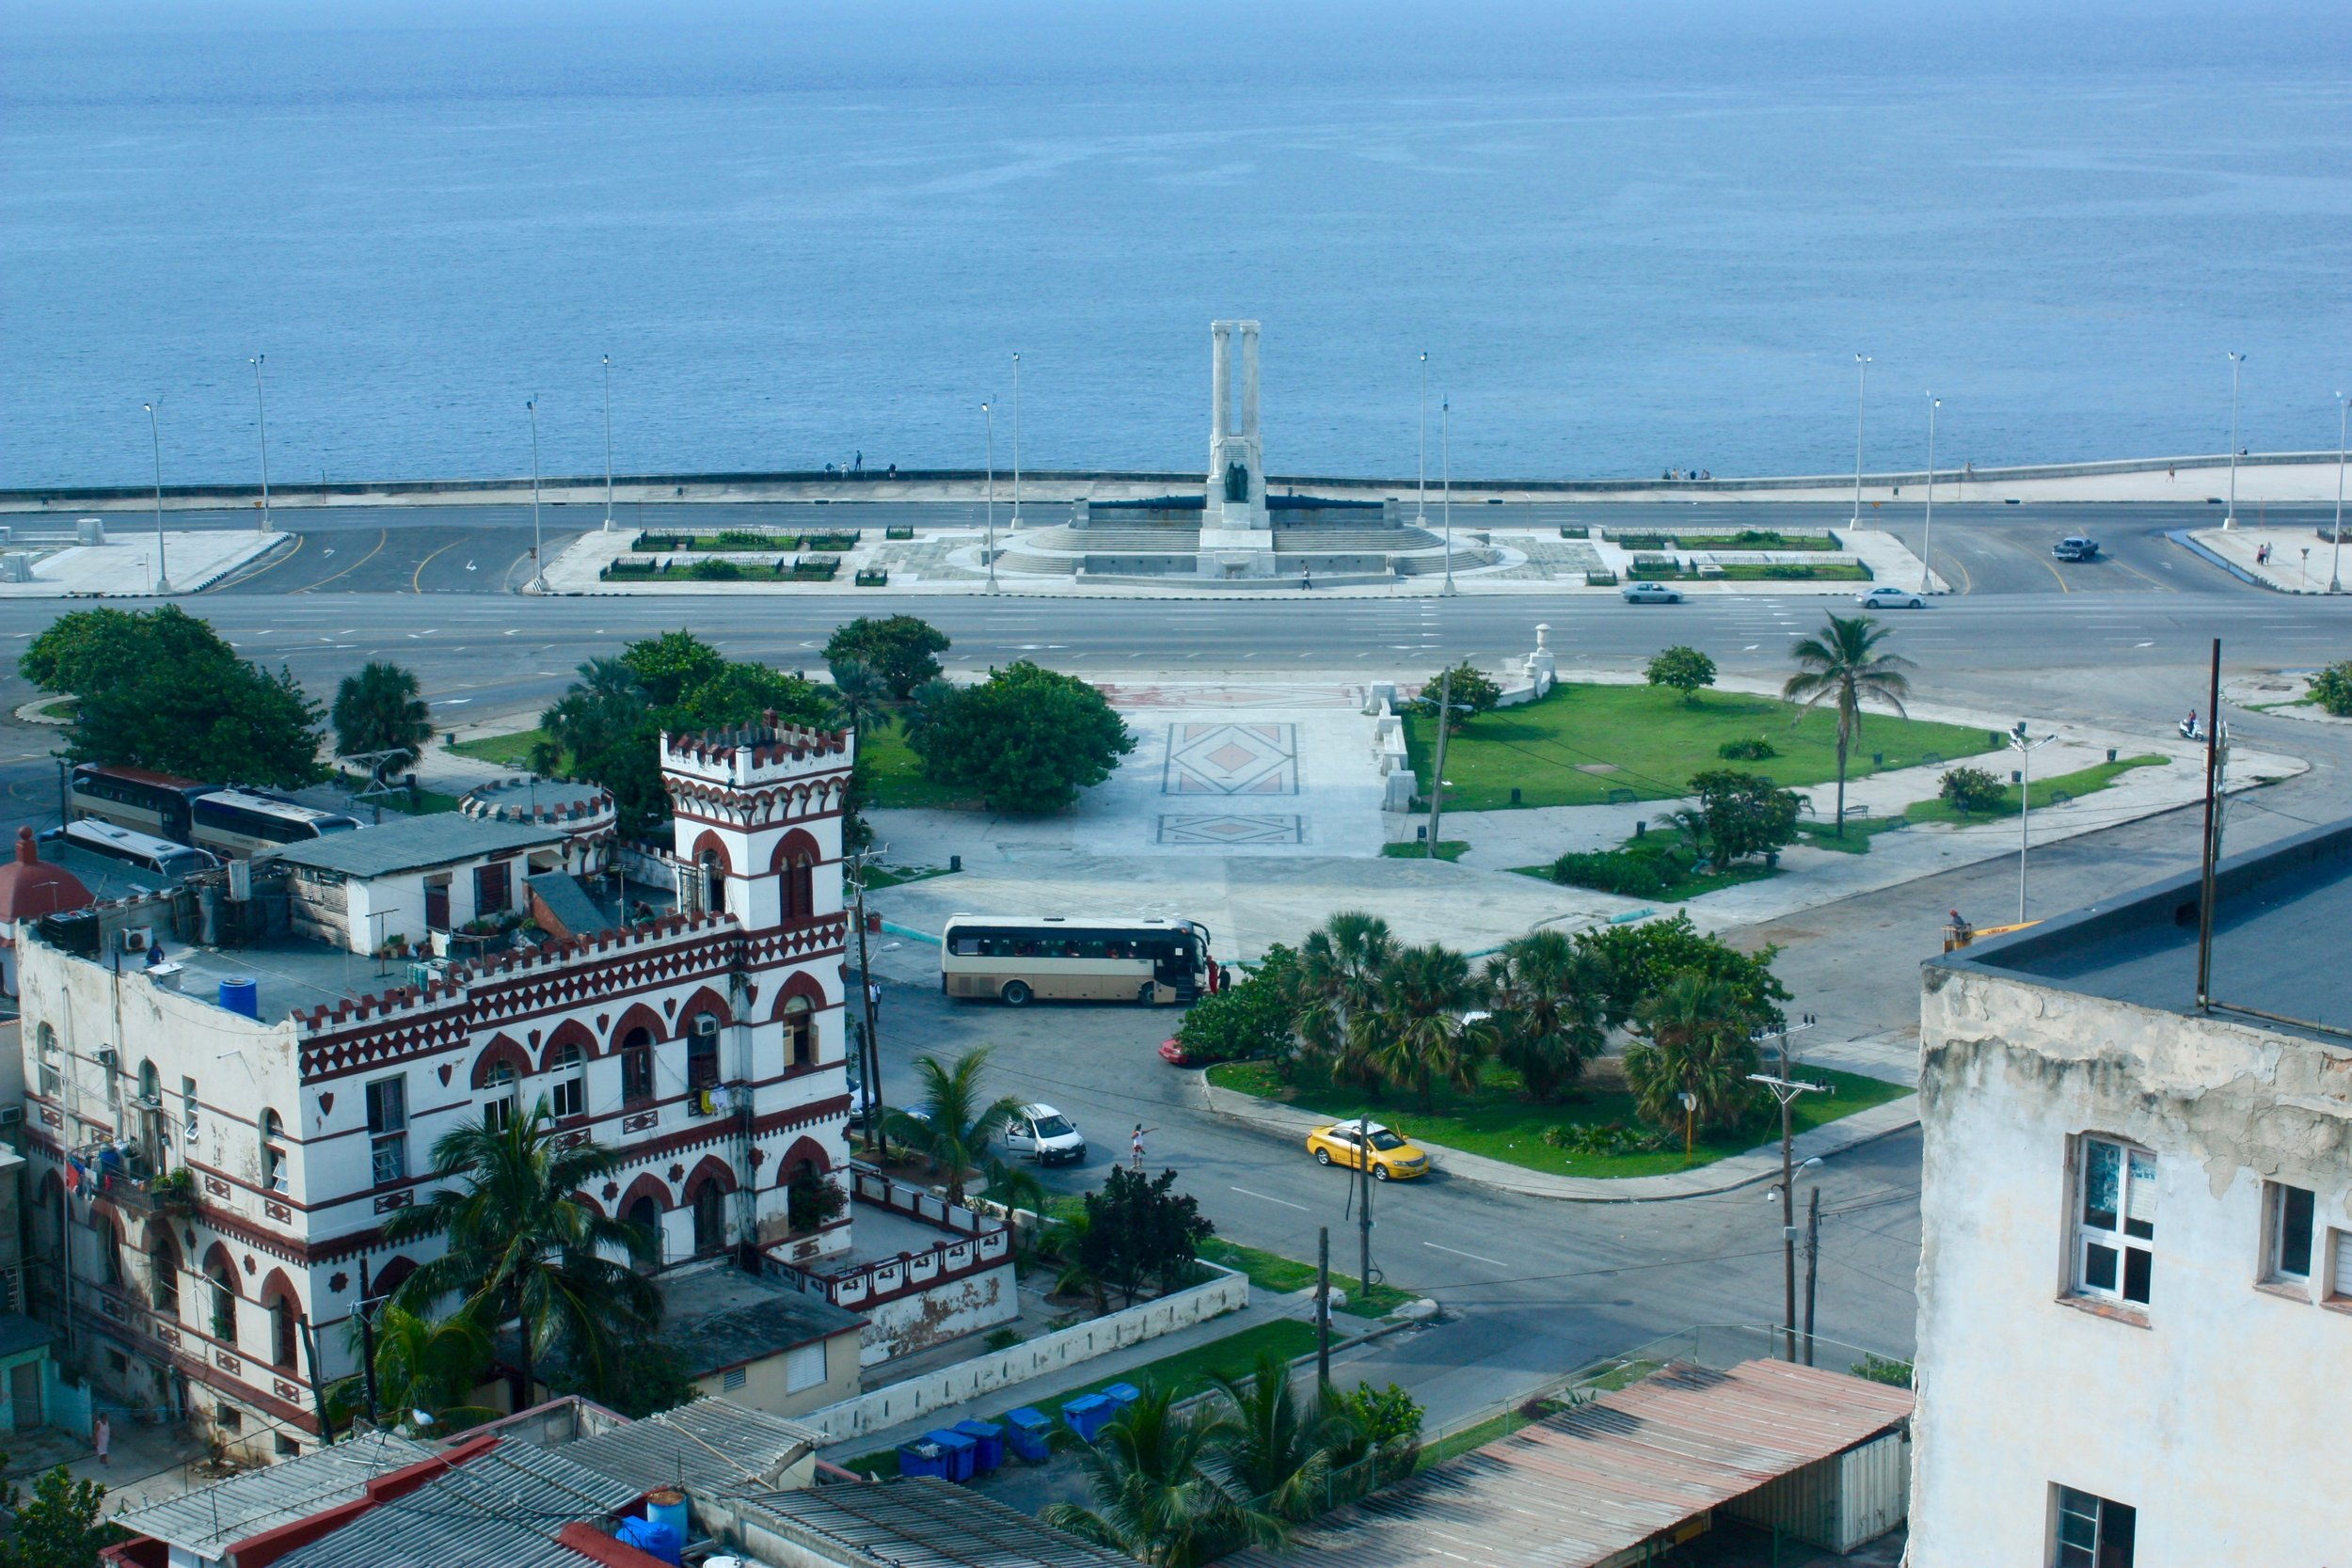 View from Hotel Capri...in the far distance you can see the malecon boardwalk